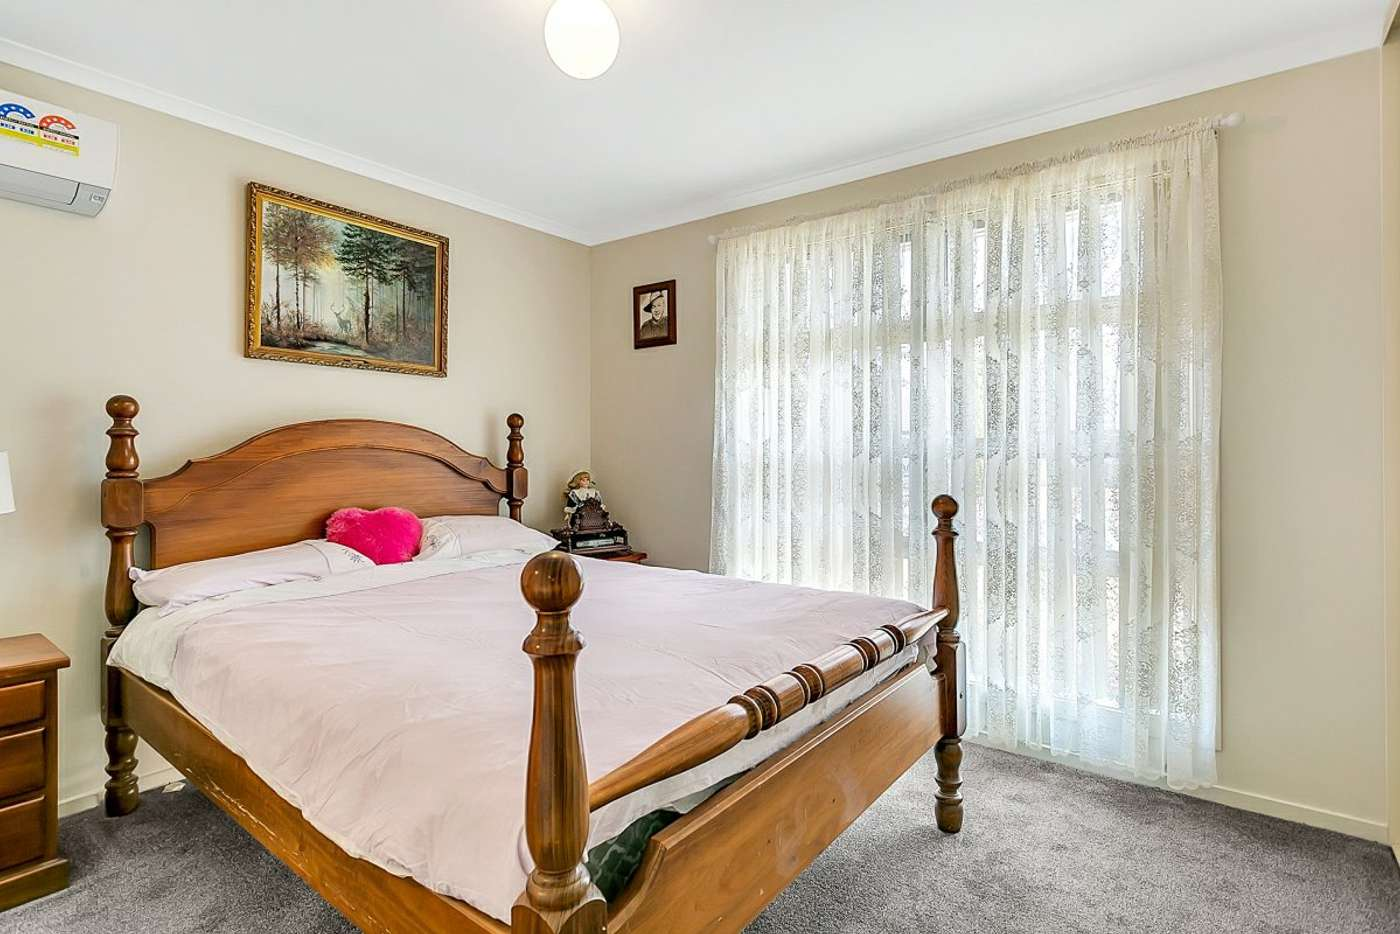 Fifth view of Homely house listing, 40 Seahaven Way, Aldinga Beach SA 5173